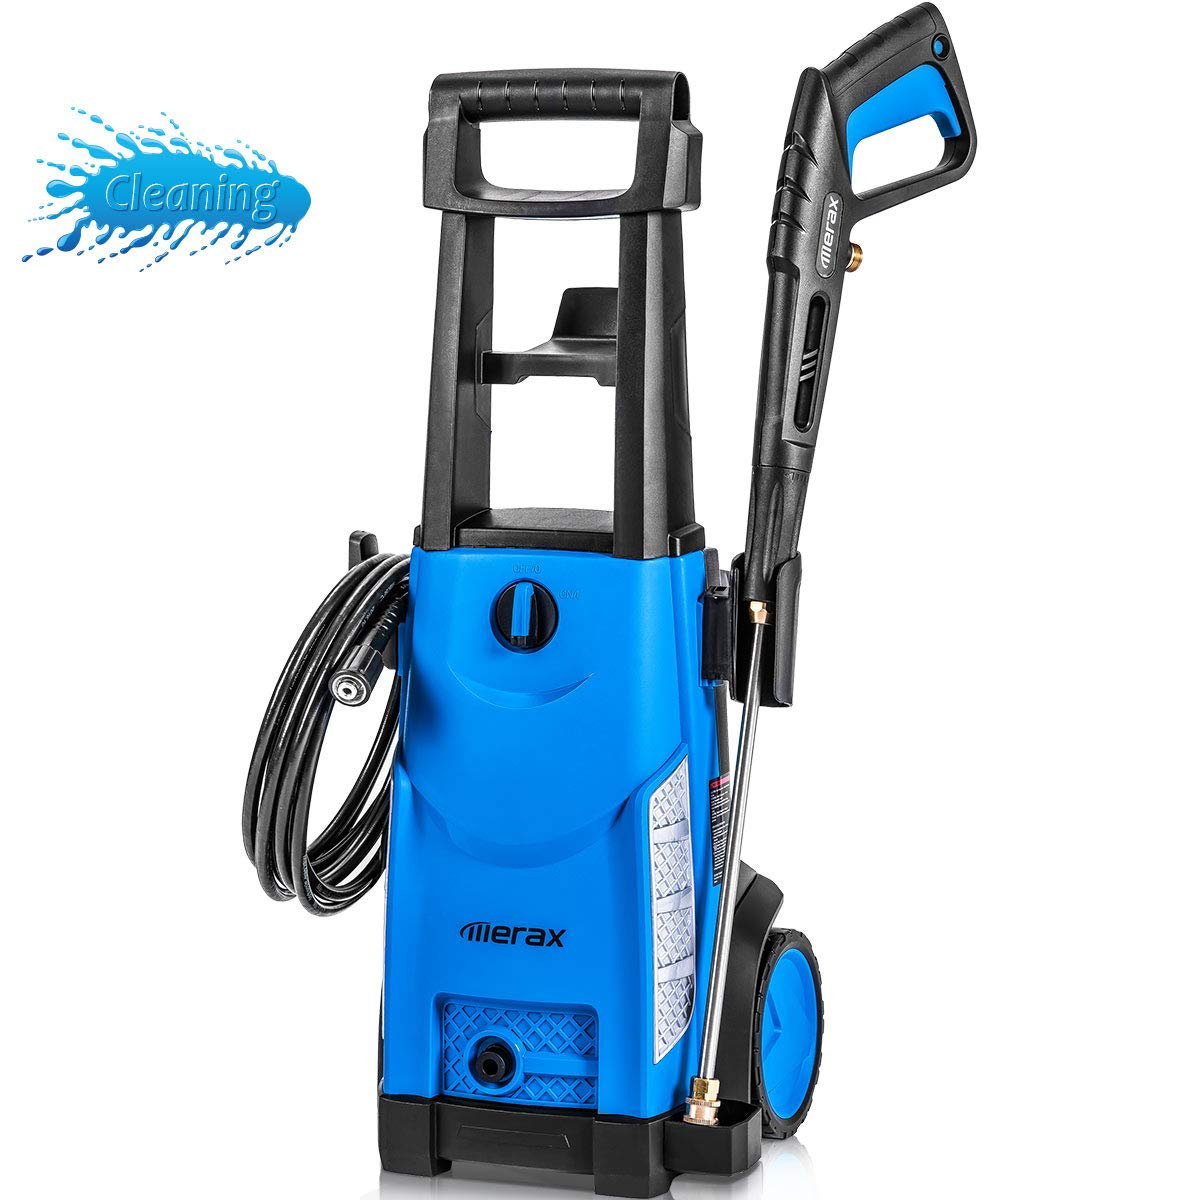 Merax Electric Pressure Washer